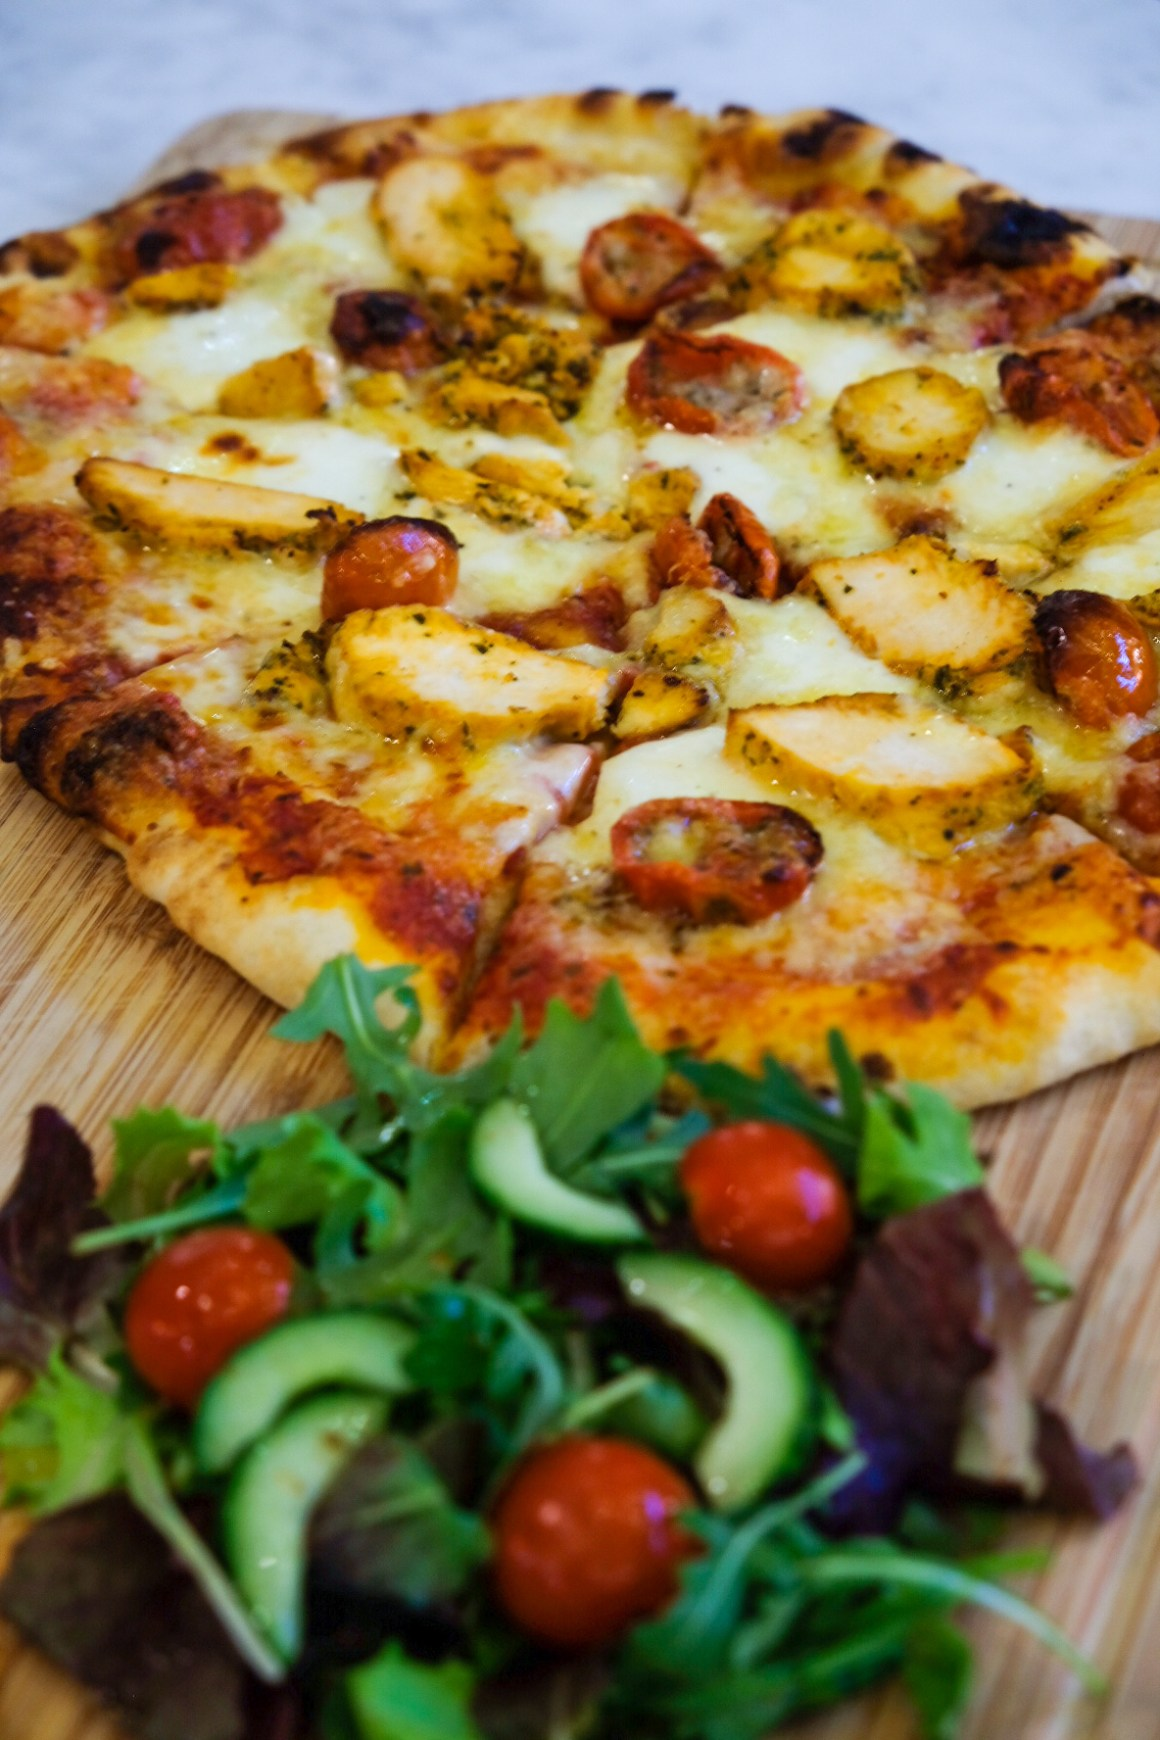 M&S Cafe New Menu Items - Wood Fired Chicken & Mozzarella Pizza ($24)